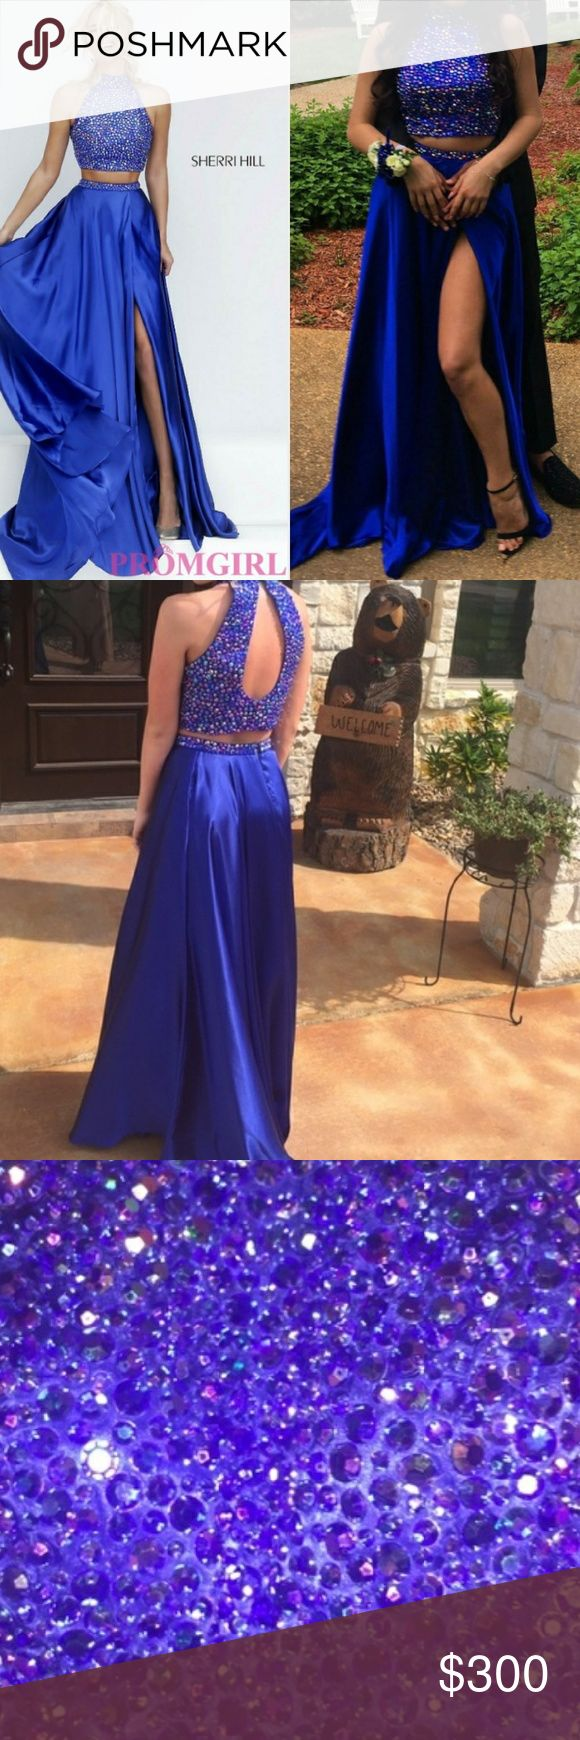 Two Piece Sherri Hill Gown Worn only once to prom, royal blue color, teardrop open back, has a leg slit, rhinestone halter top, small train, price negotiable, perfect condition Sherri Hill Dresses Prom